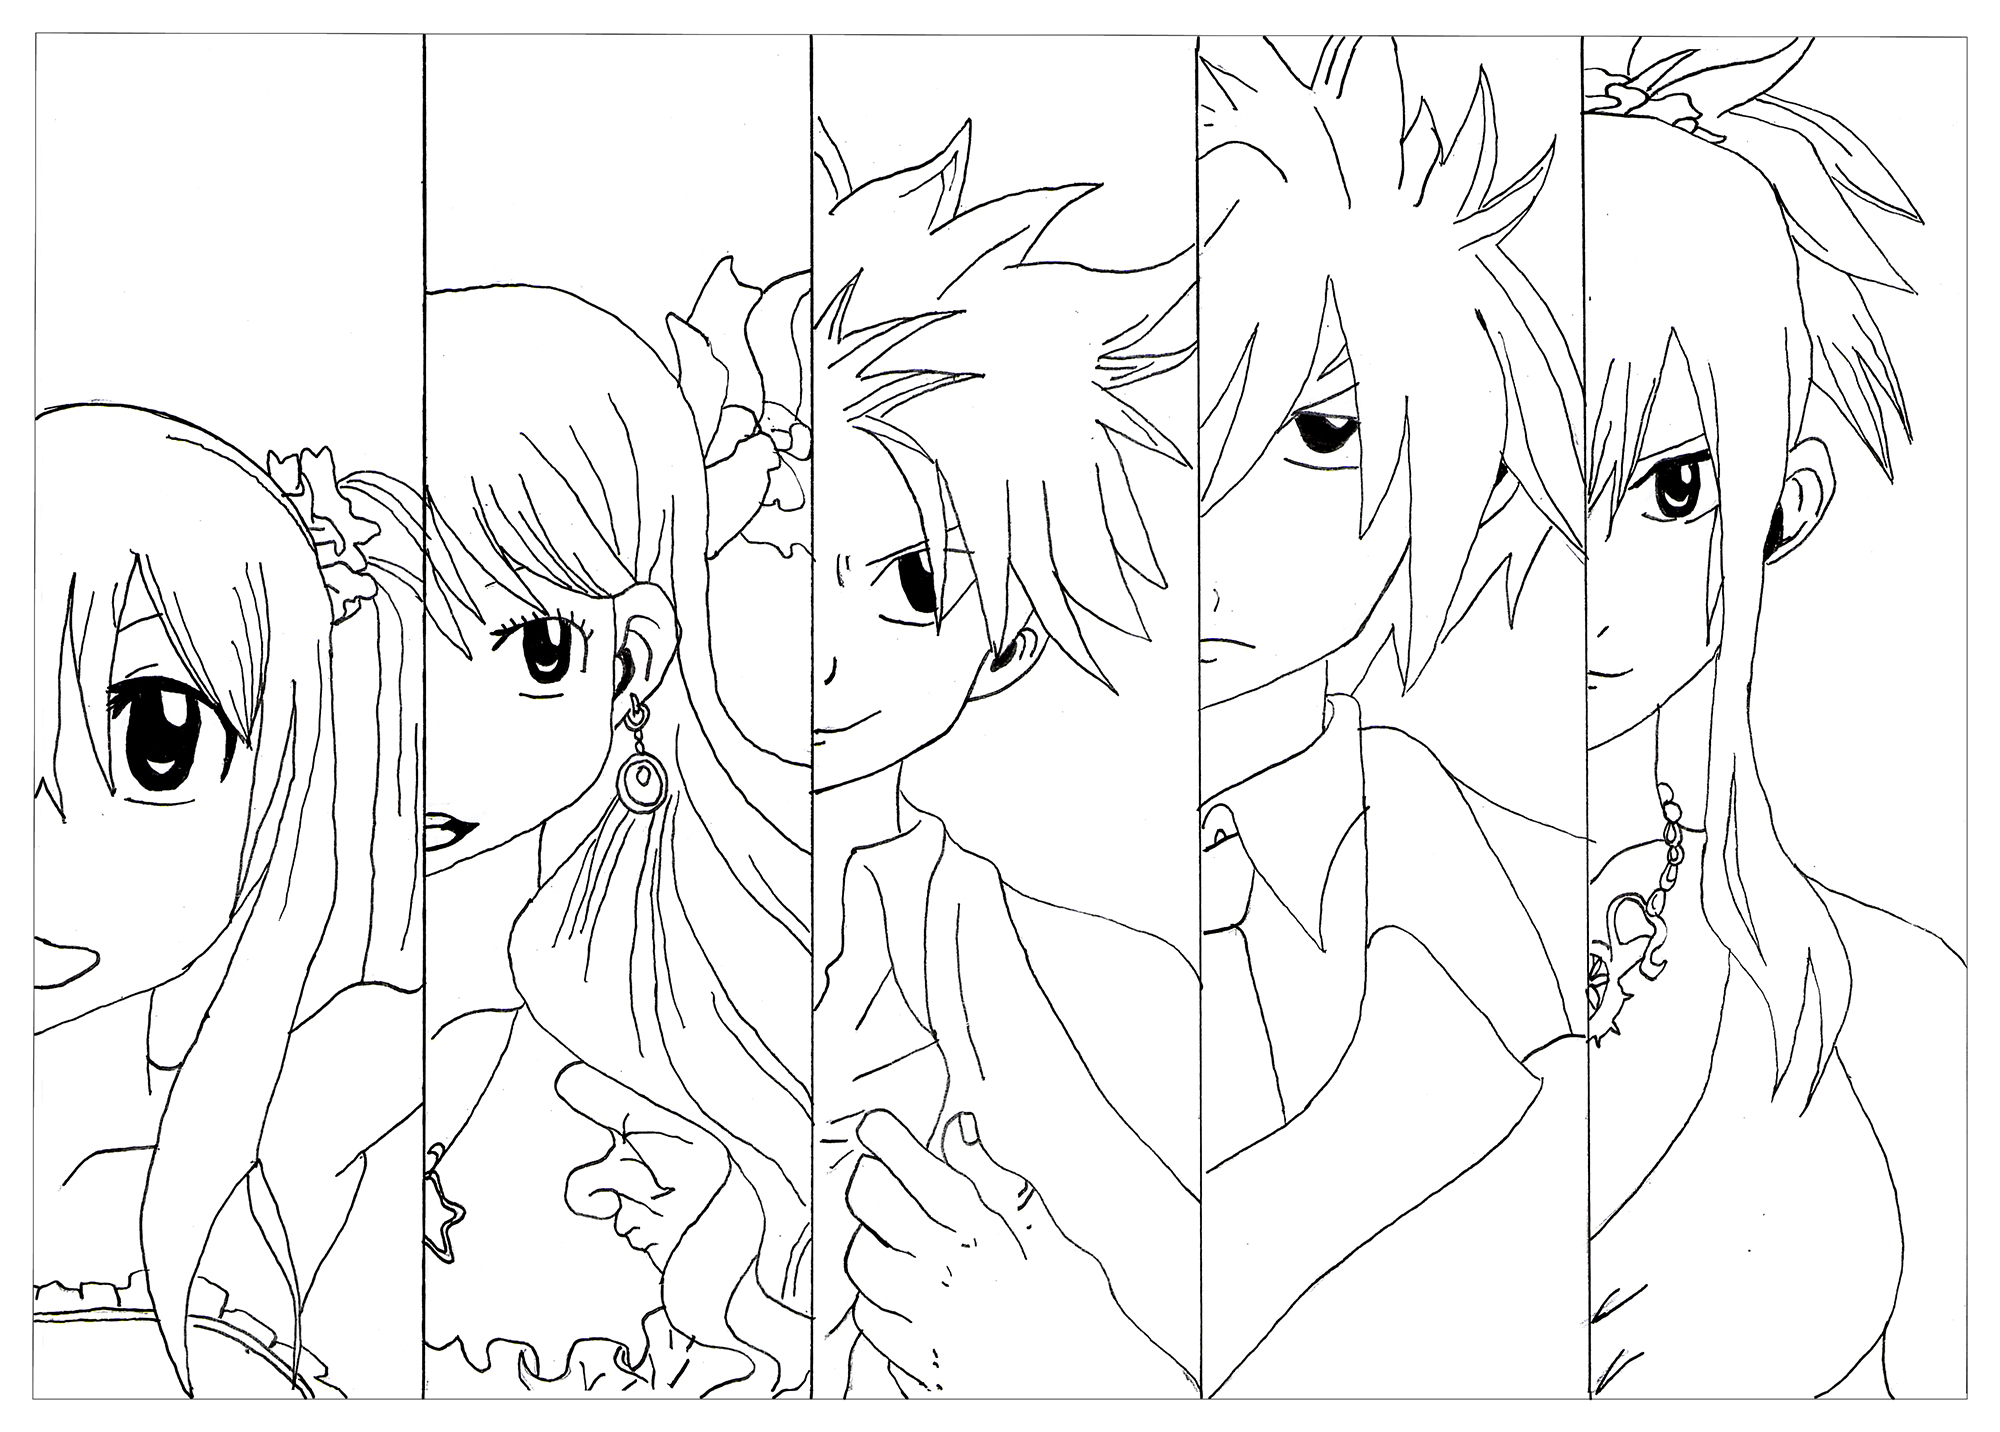 Manga Fairy Tail Krissy Manga Anime Adult Coloring Pages